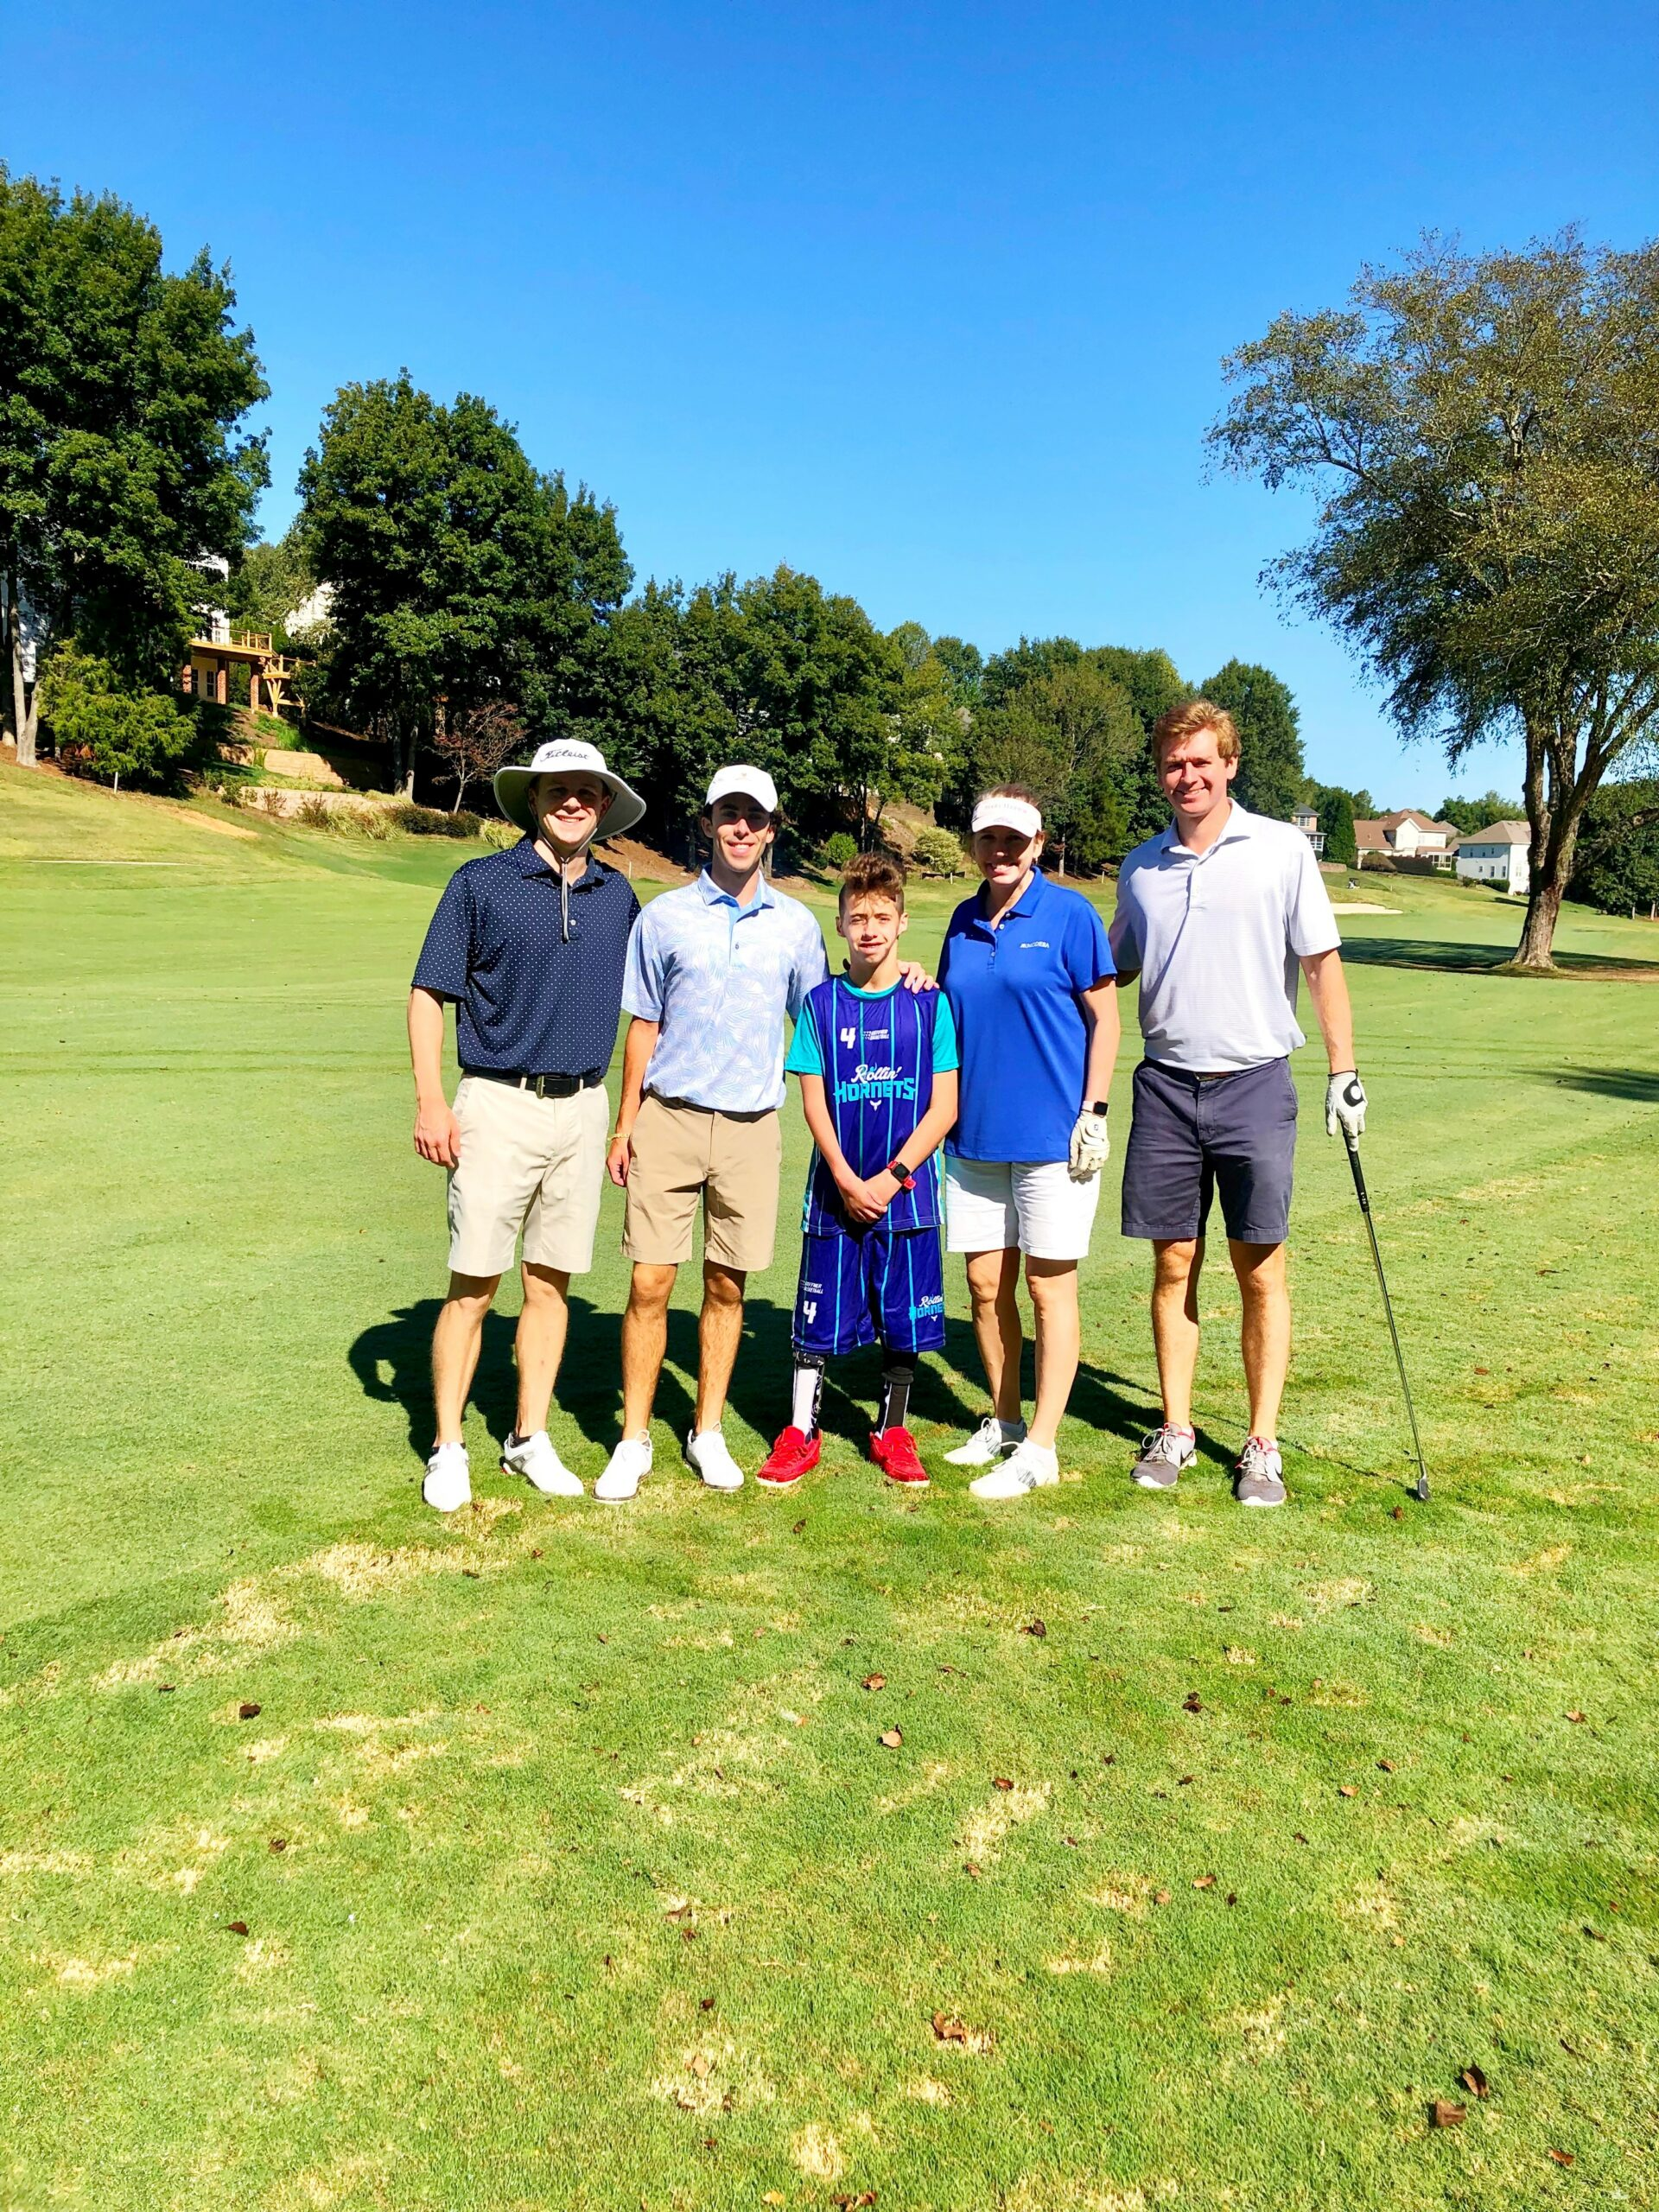 Erica, Shane, Dawson, Zach pose on the green with a player from the rollin hornets